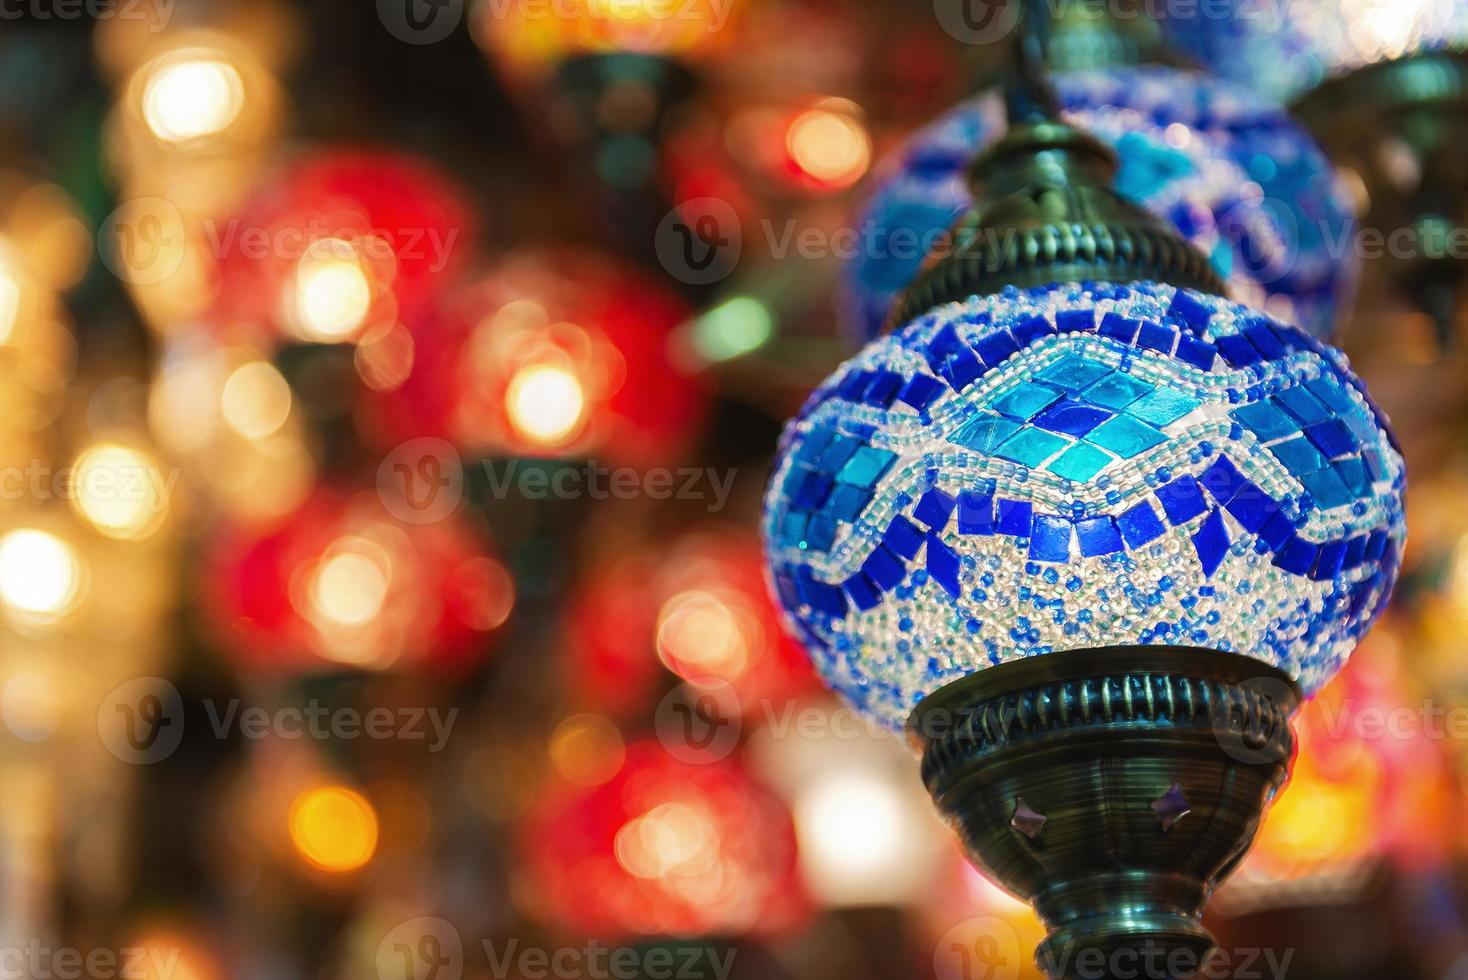 Islamic arabesque and middle eastern lights photo